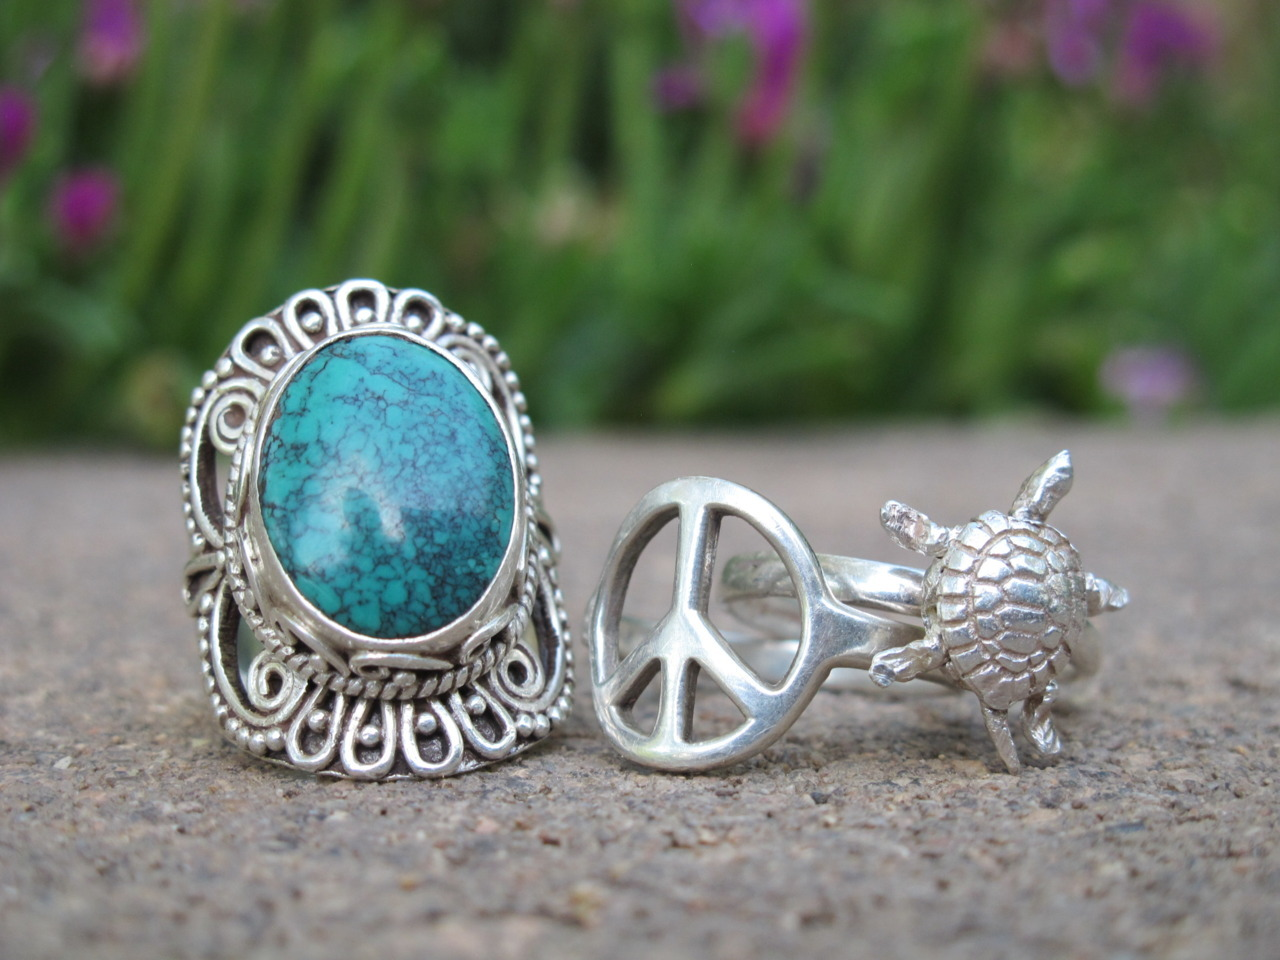 tranquility-kids:  A few of my rings :)